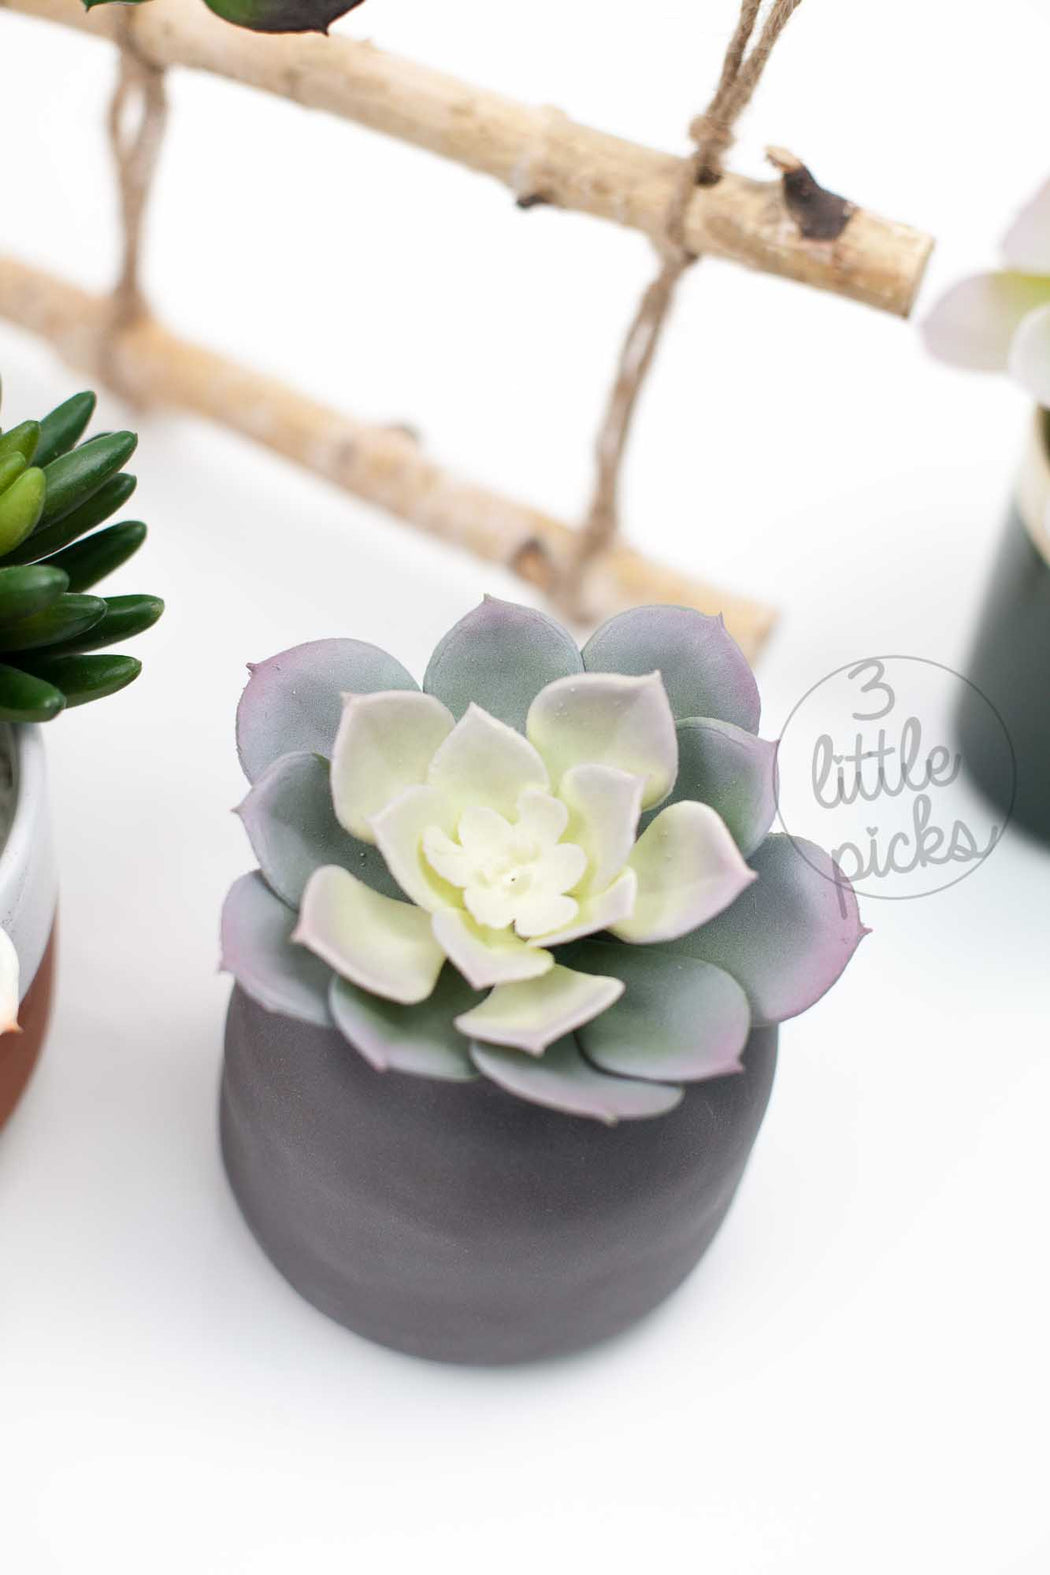 Faux Succulent (Part 1), Decor, 3littlepicks - 3LittlePicks